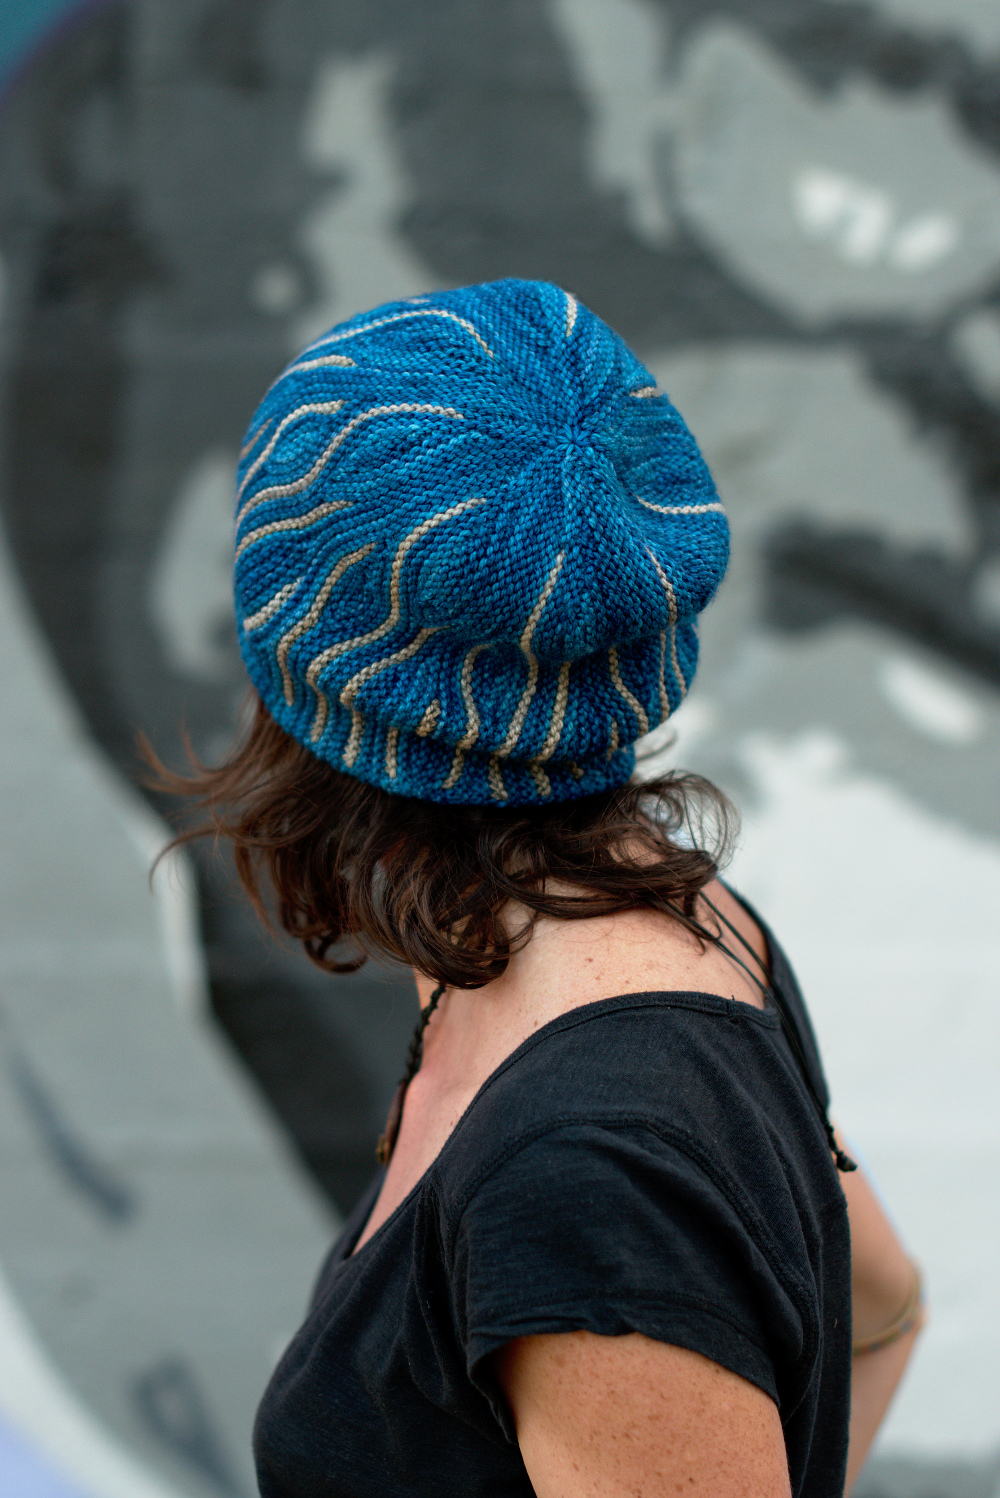 Katara sideways knit short row colourwork hat knitting pattern